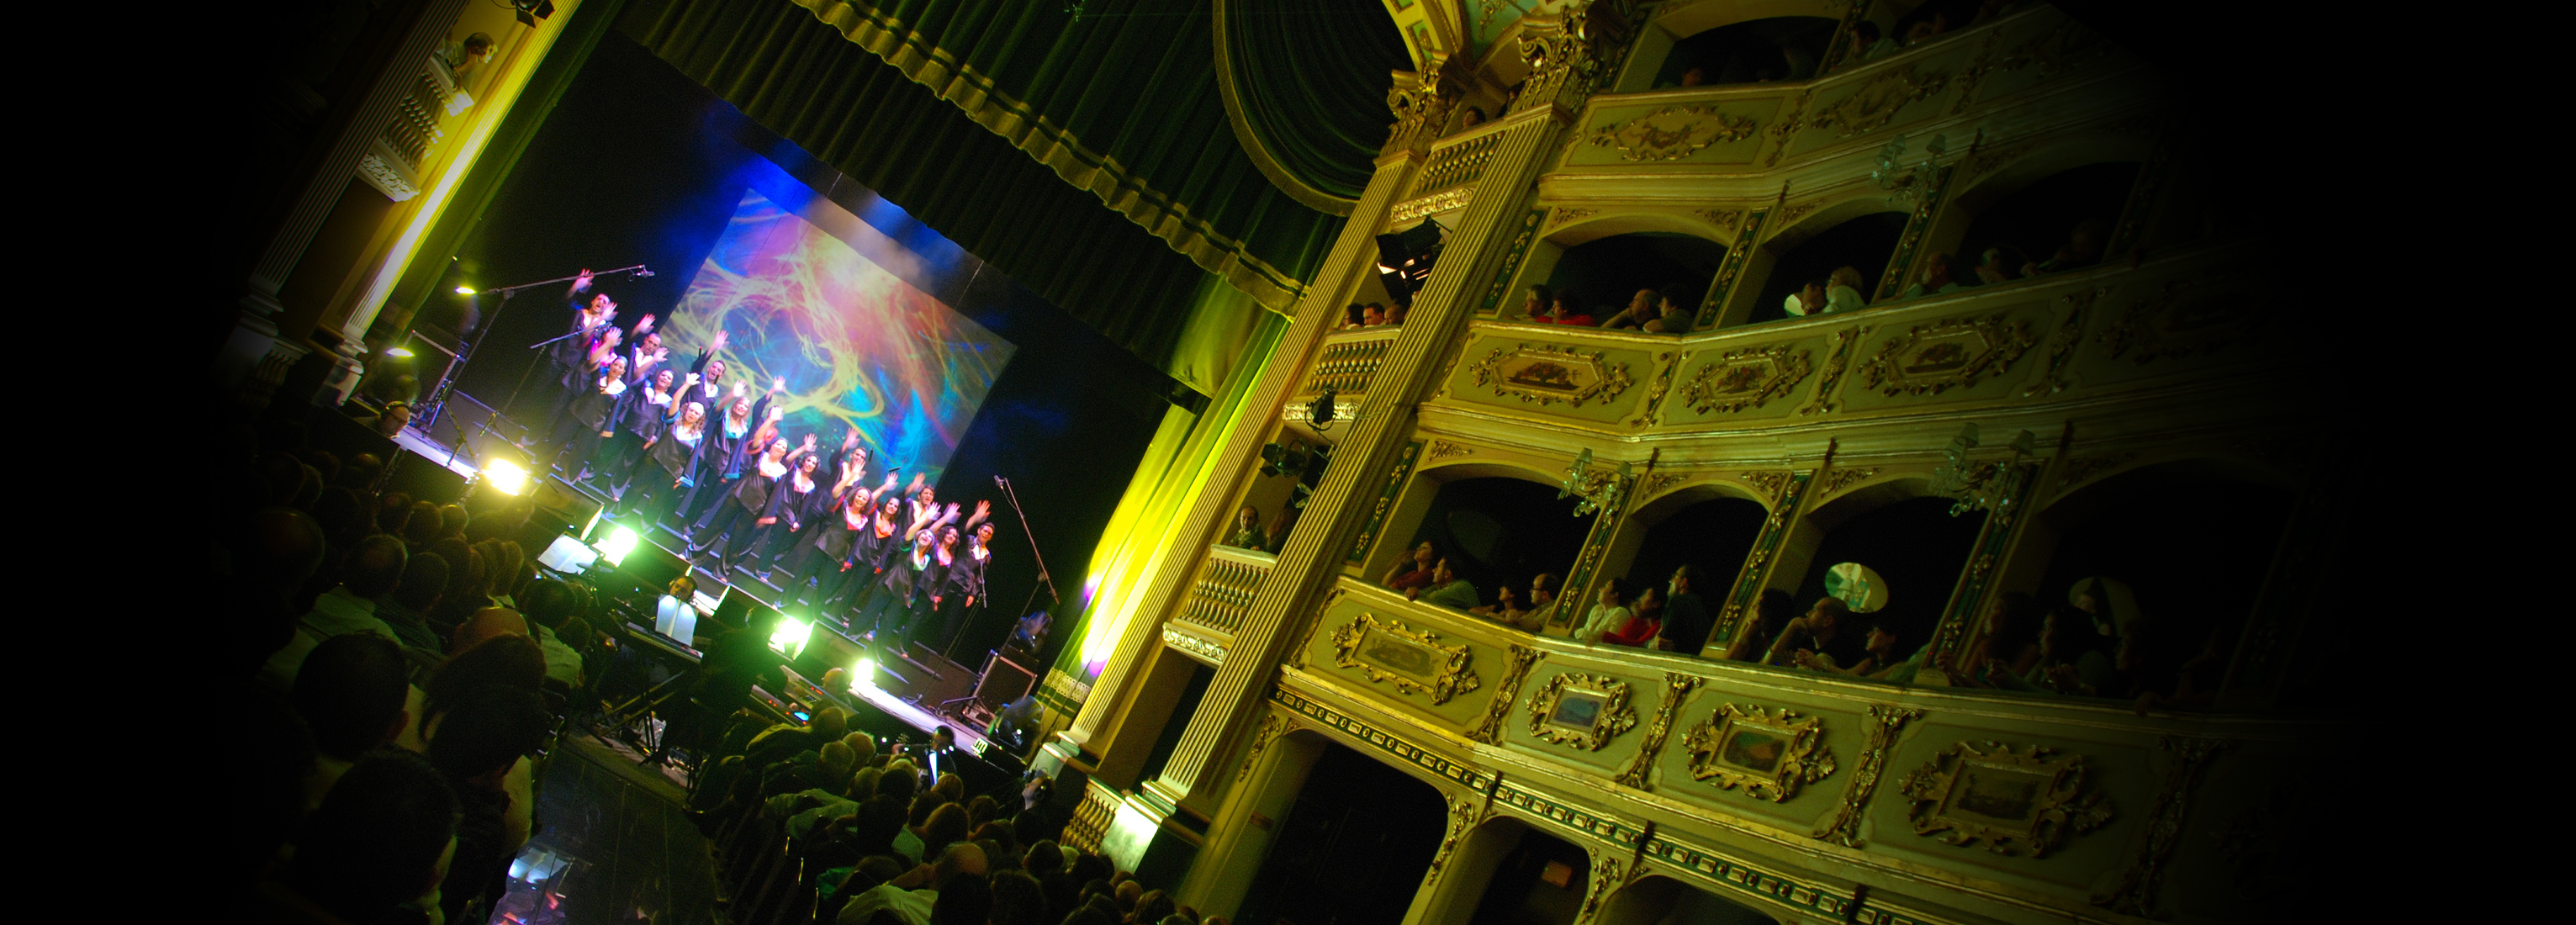 Manoel Theatre 2009